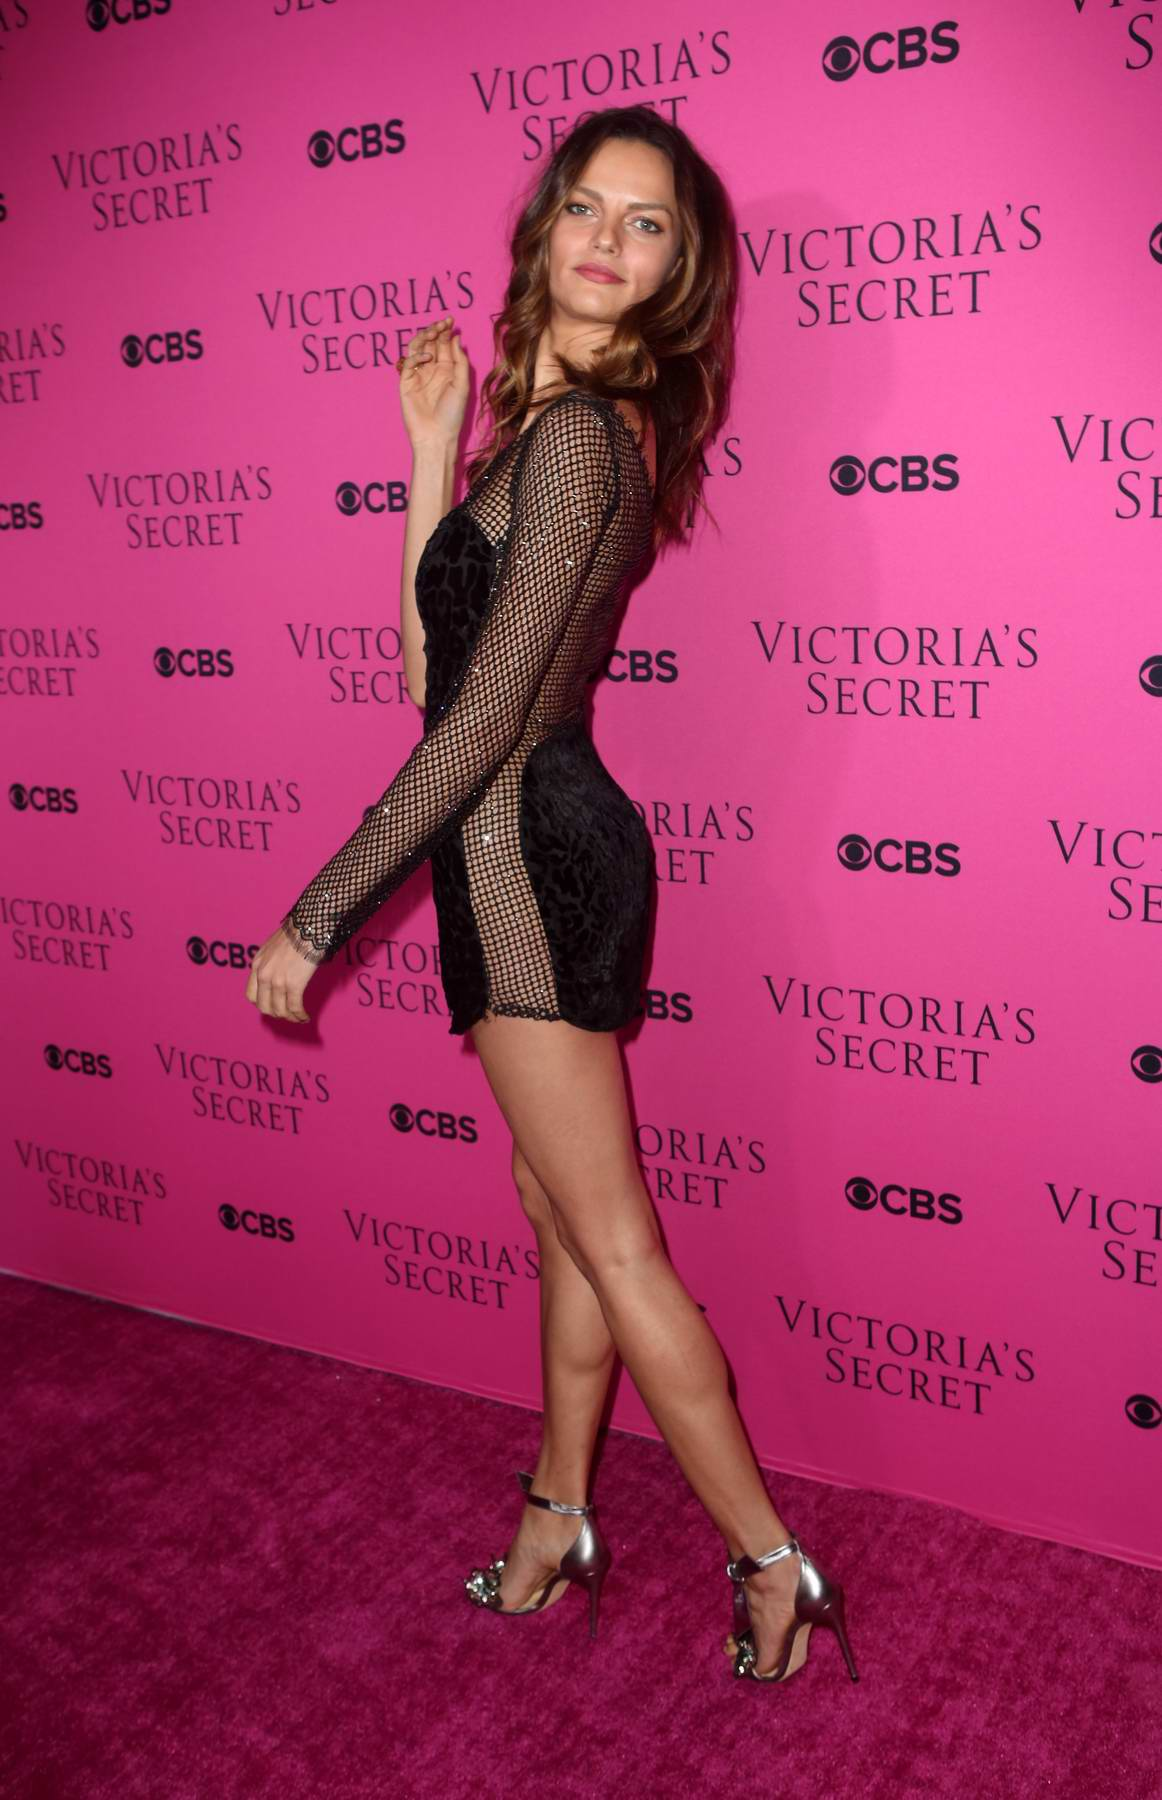 Barbara Fialho at the Victoria's Secret Fashion Show viewing party in New York